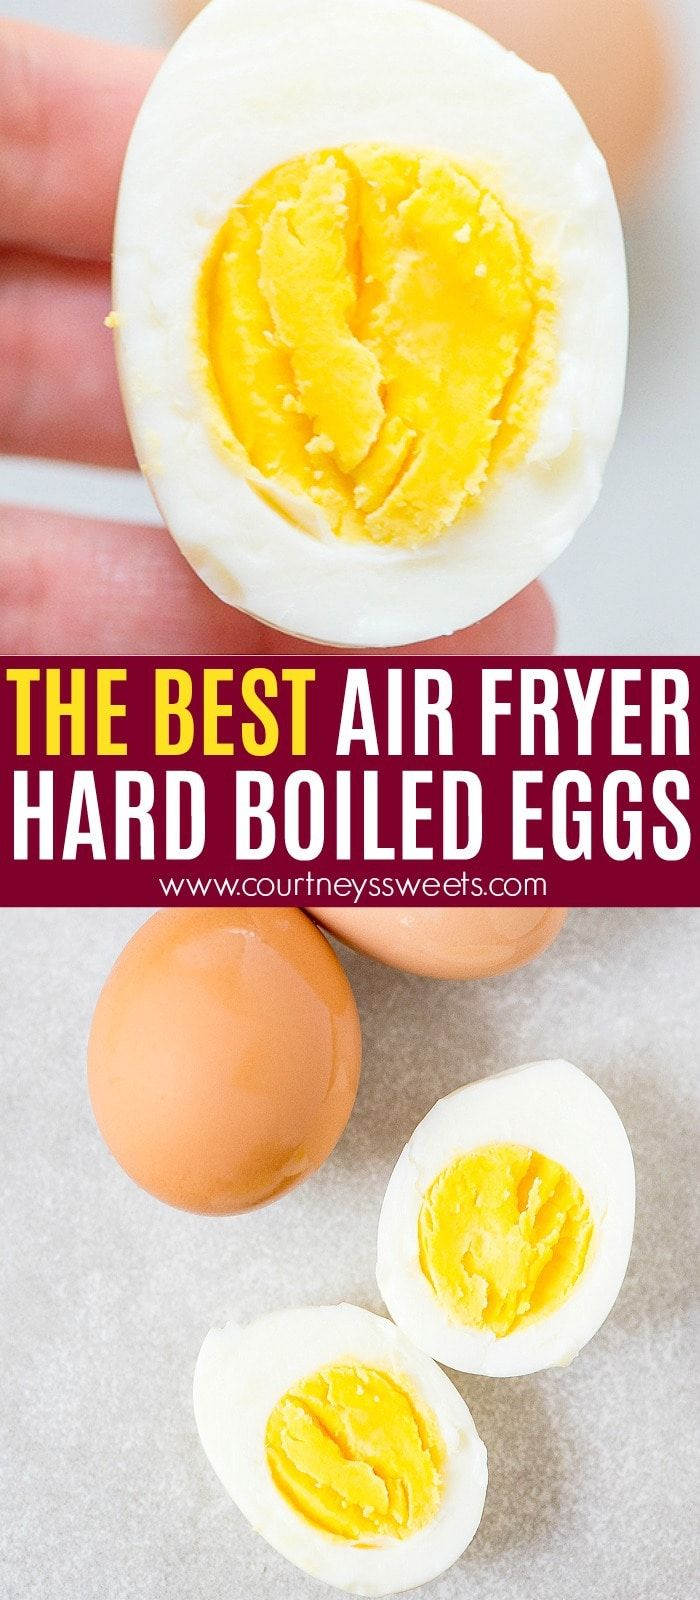 Air Fryer Hard Boiled Eggs #airfryerrecipes